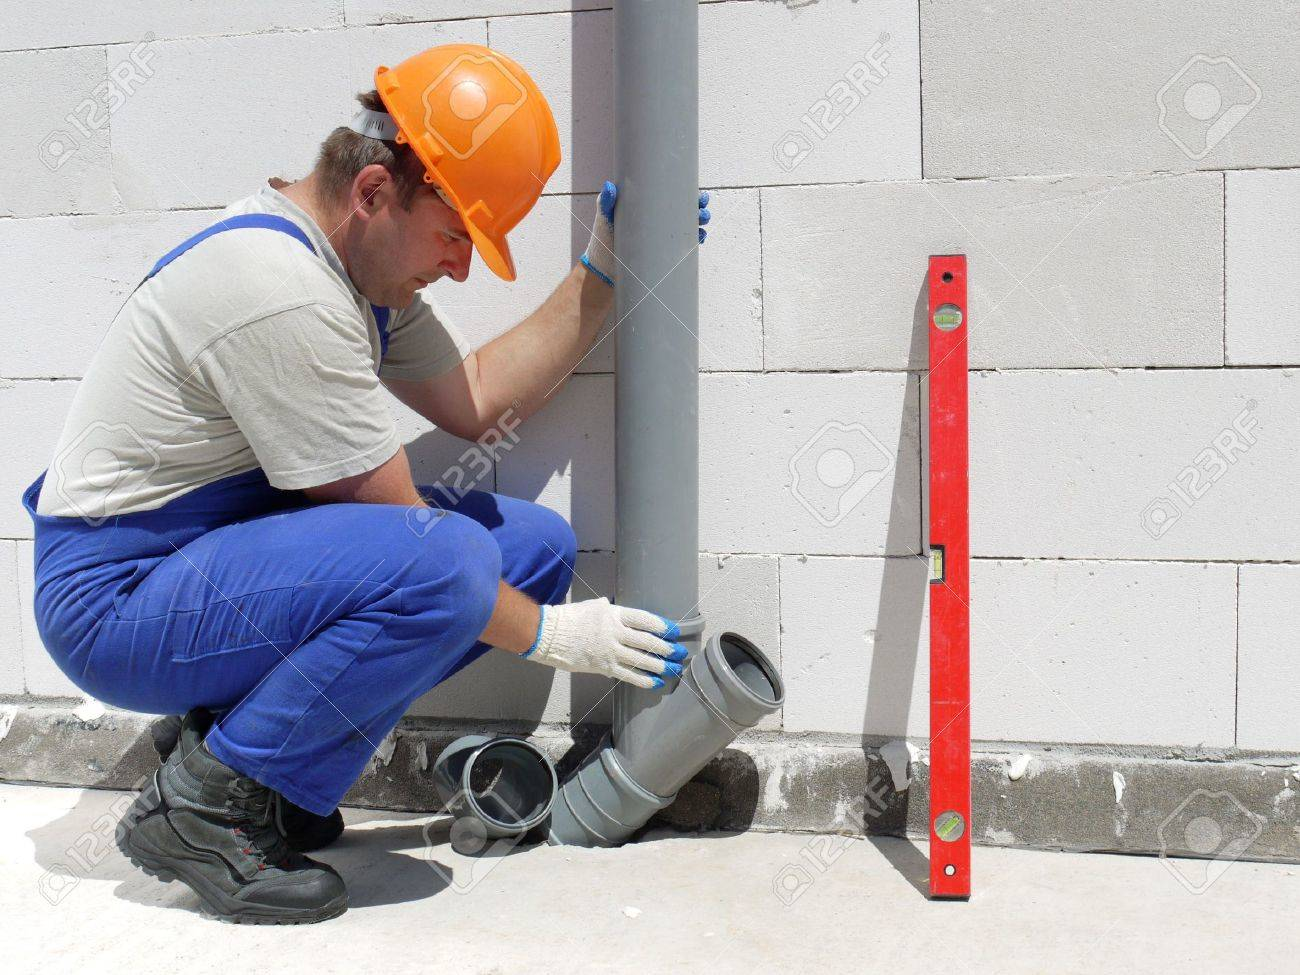 Plumber assembling pvc sewage pipes inside unfinished house Stock Photo - 5034704